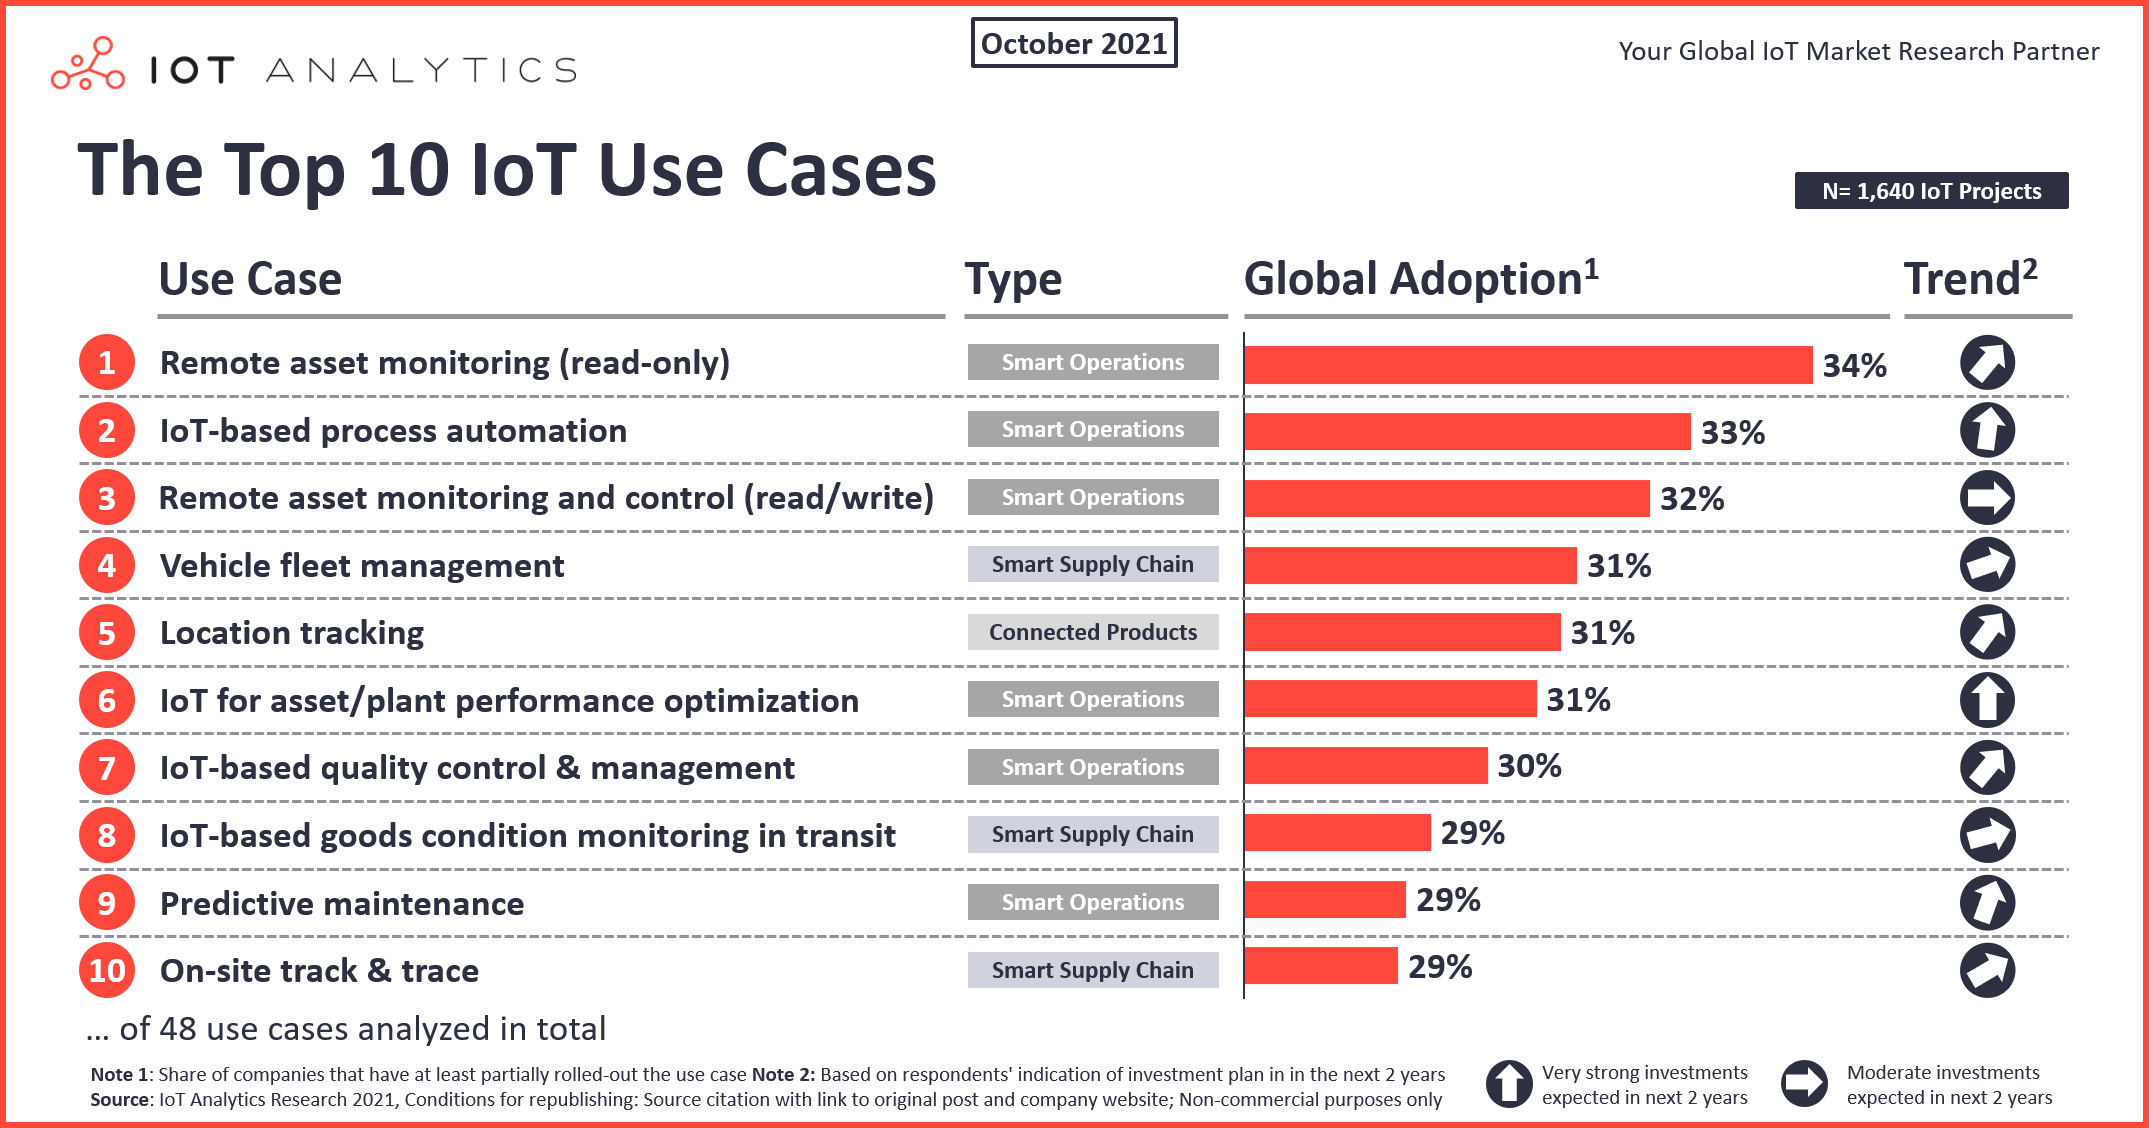 Top 10 IoT Use Cases